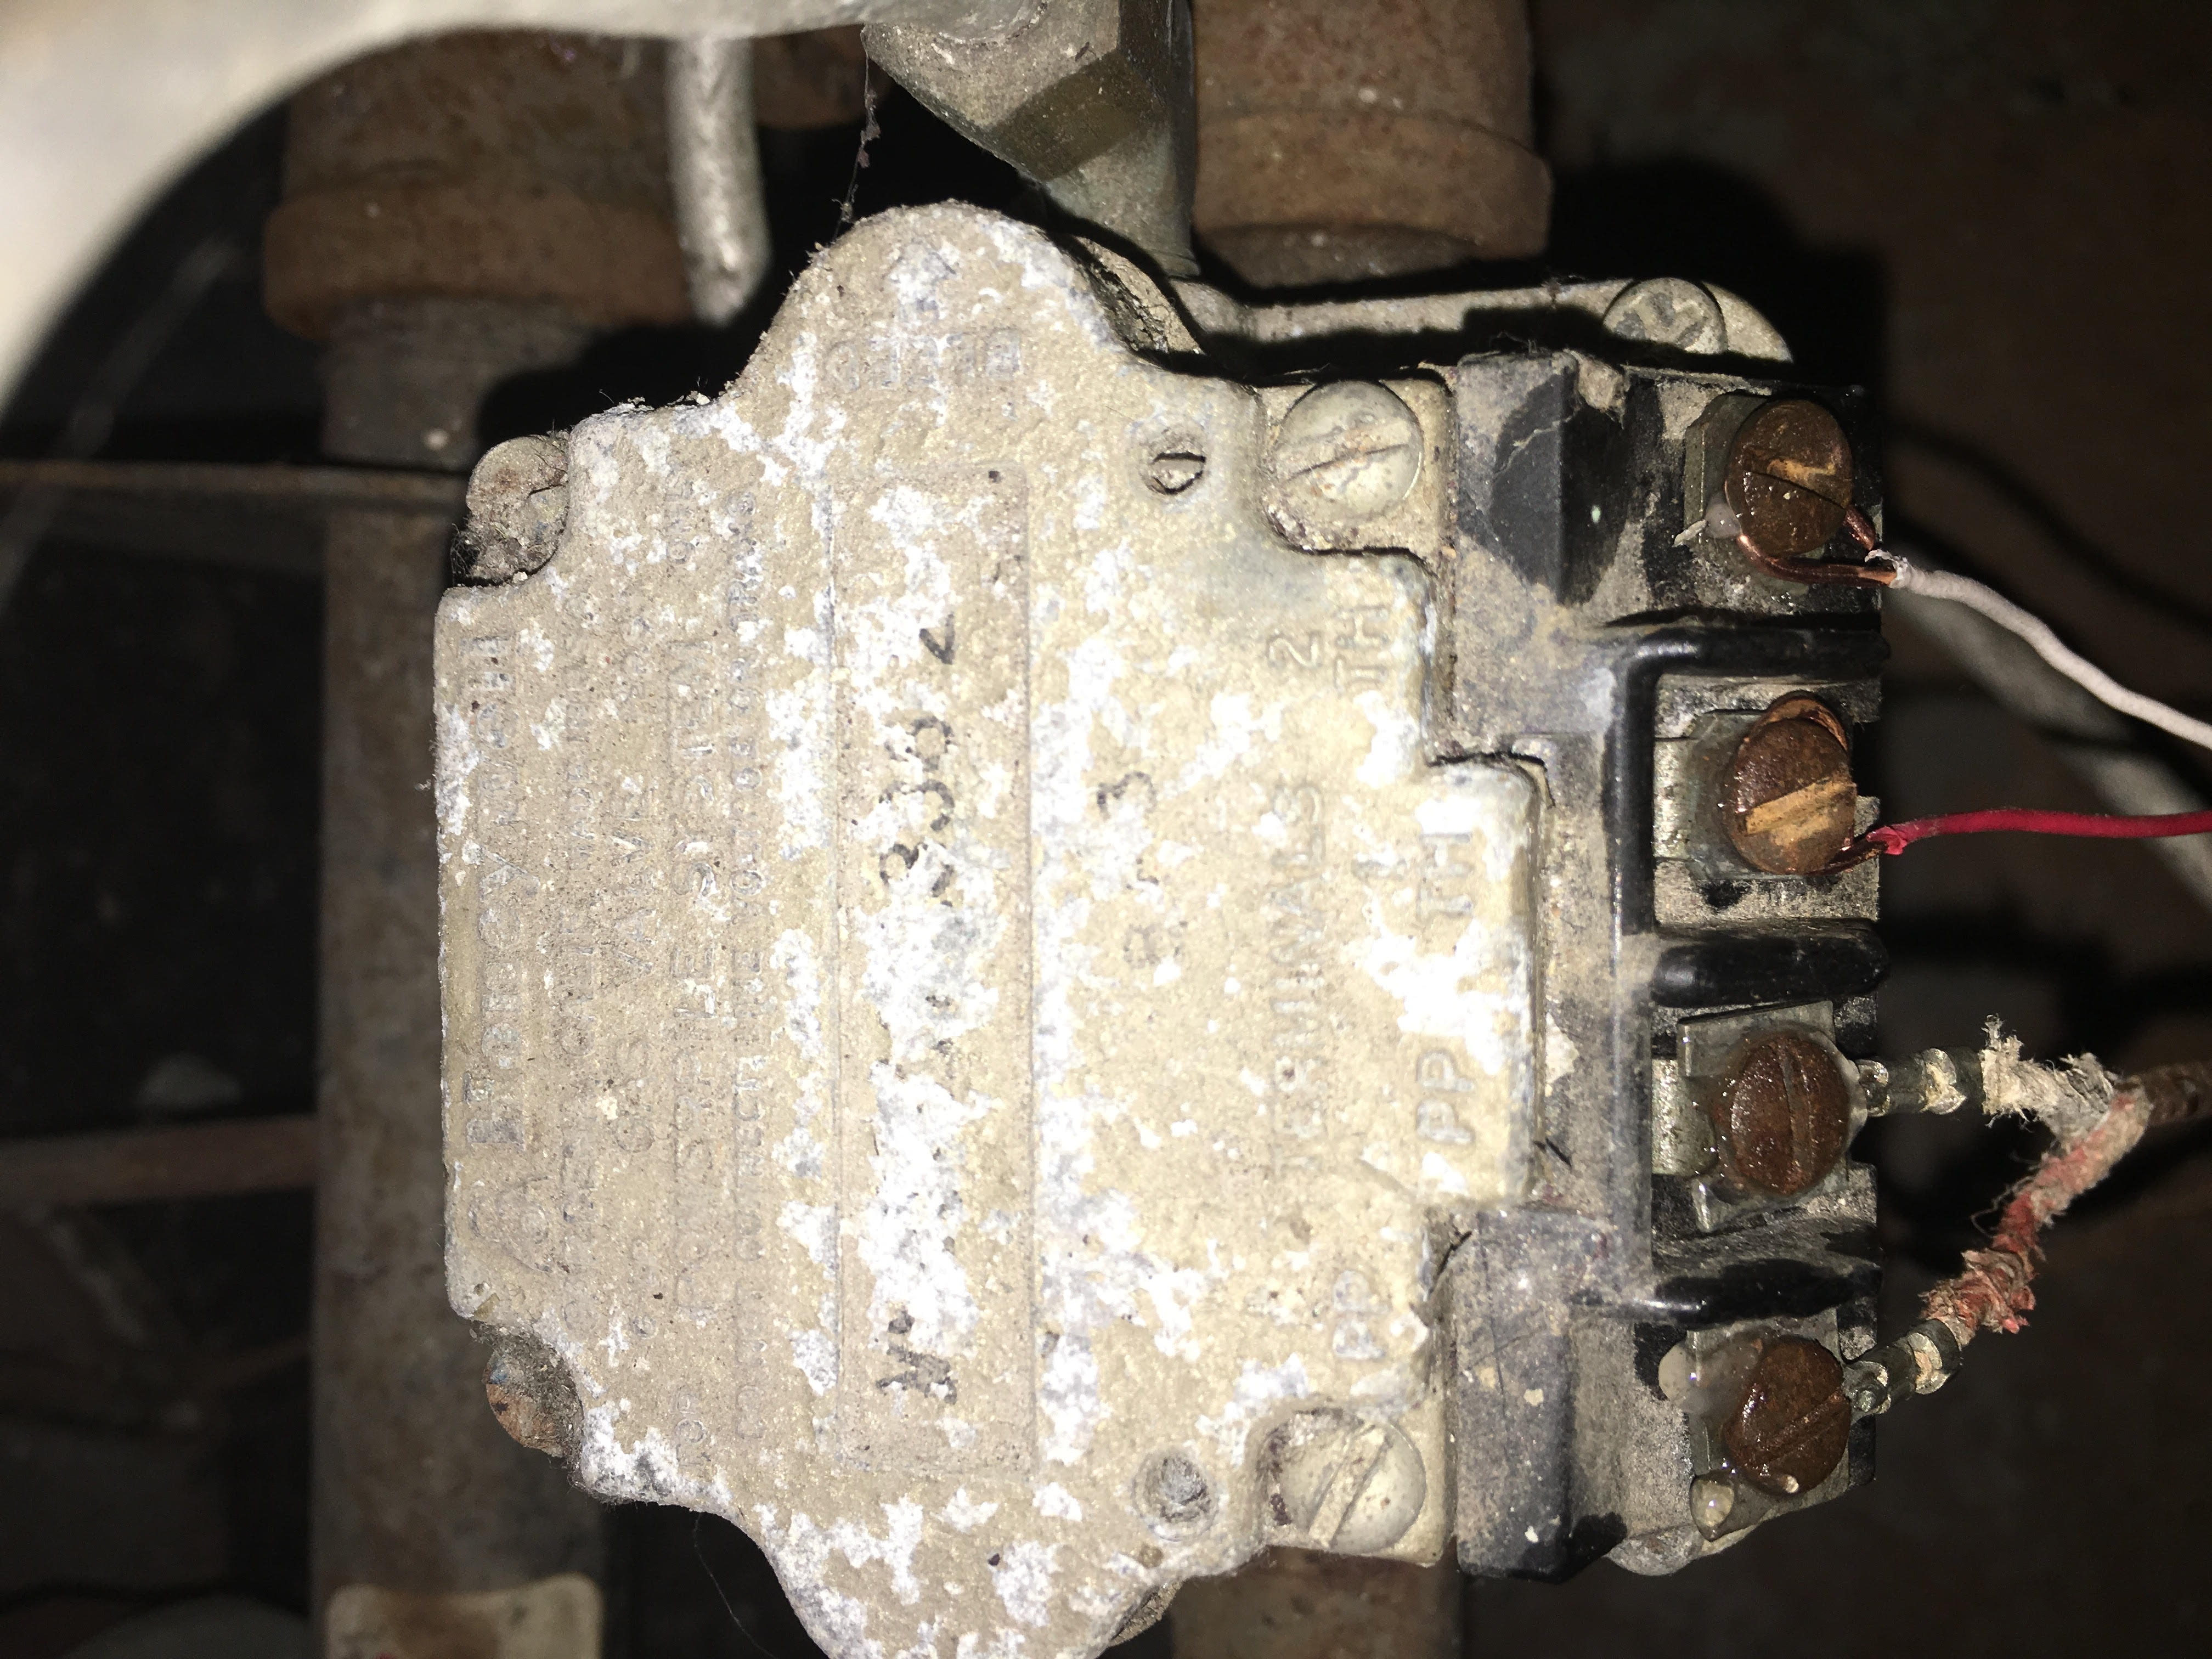 Powerpile Vs8178c 1010 Gas Valve Heating Help The Wall